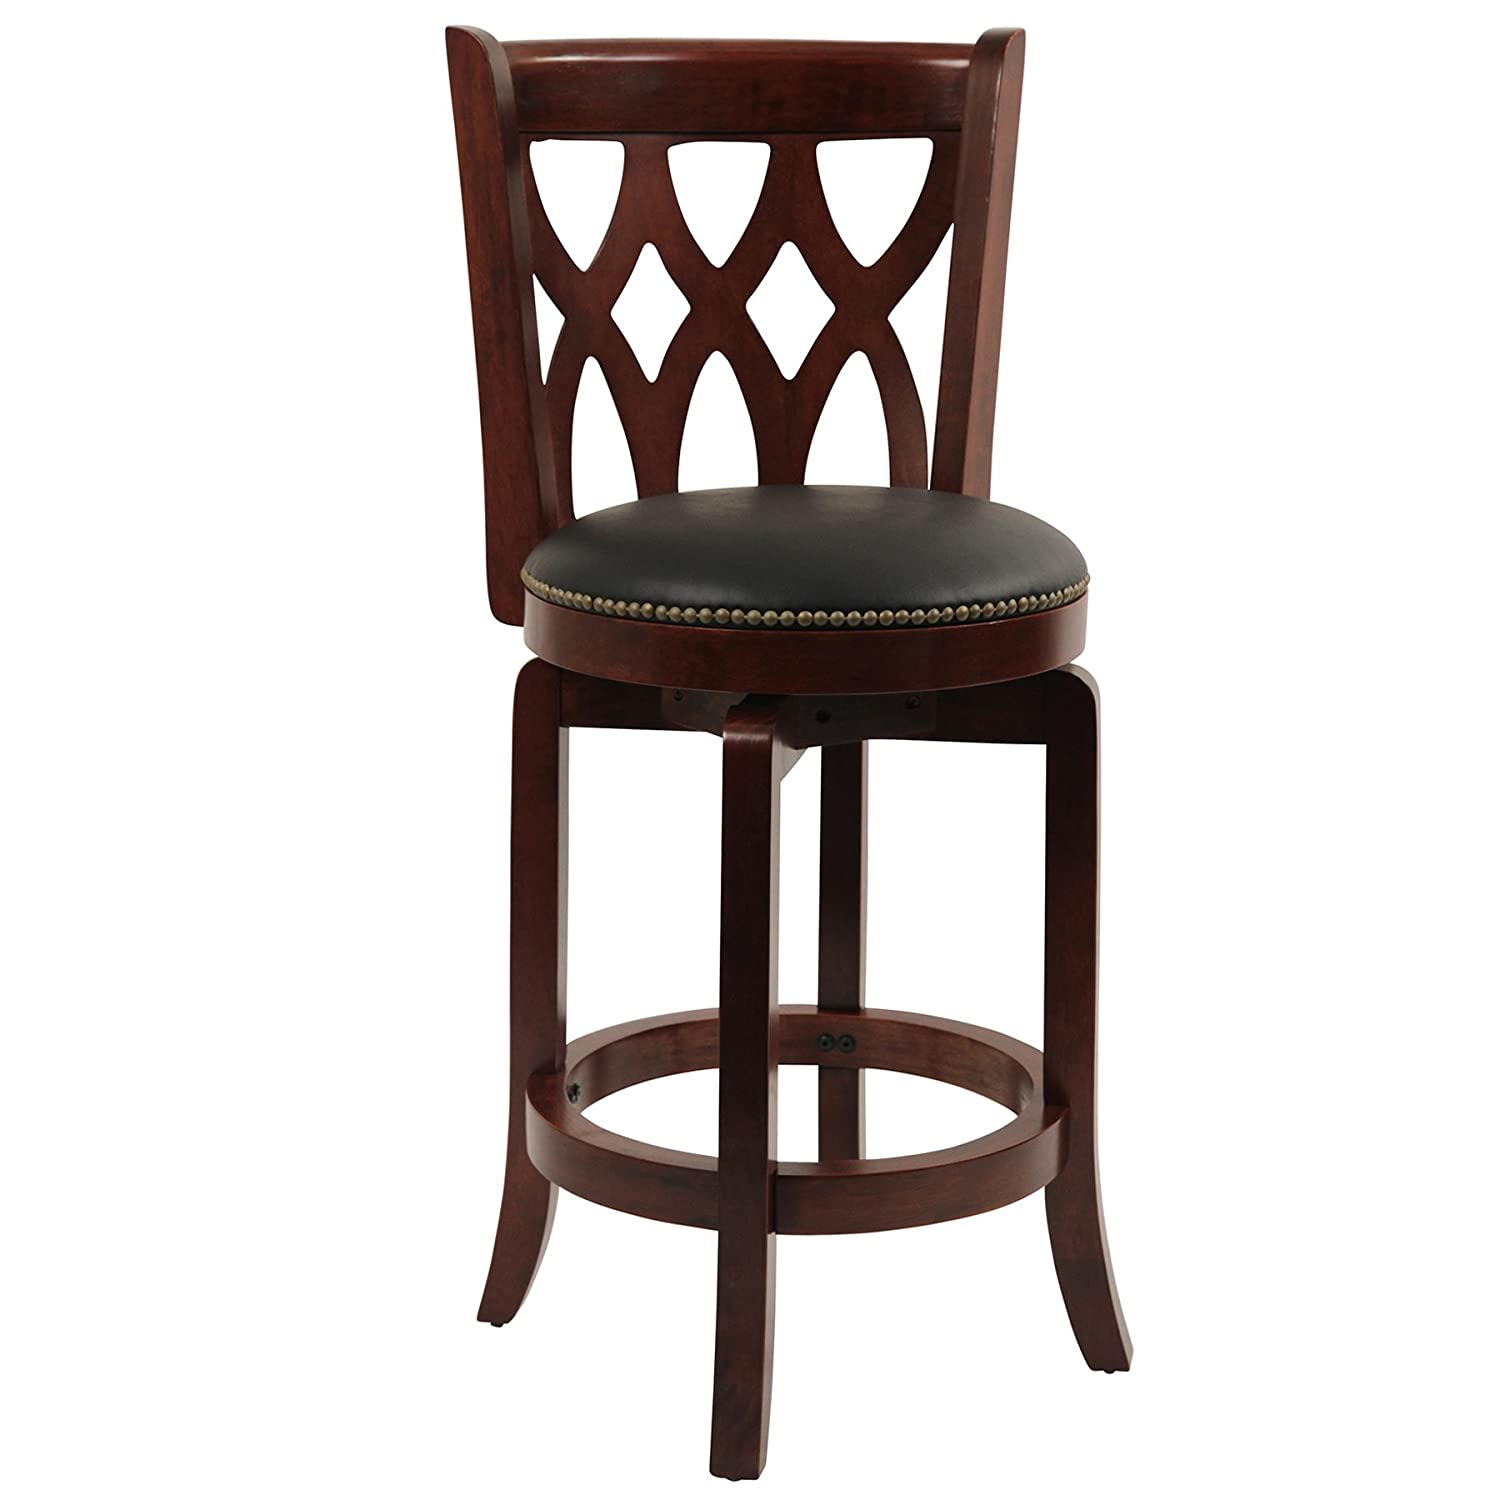 Amazon.com Boraam 40324 Cathedral Counter Height Swivel Stool 24-Inch Cherry Kitchen u0026 Dining  sc 1 st  Amazon.com & Amazon.com: Boraam 40324 Cathedral Counter Height Swivel Stool 24 ... islam-shia.org